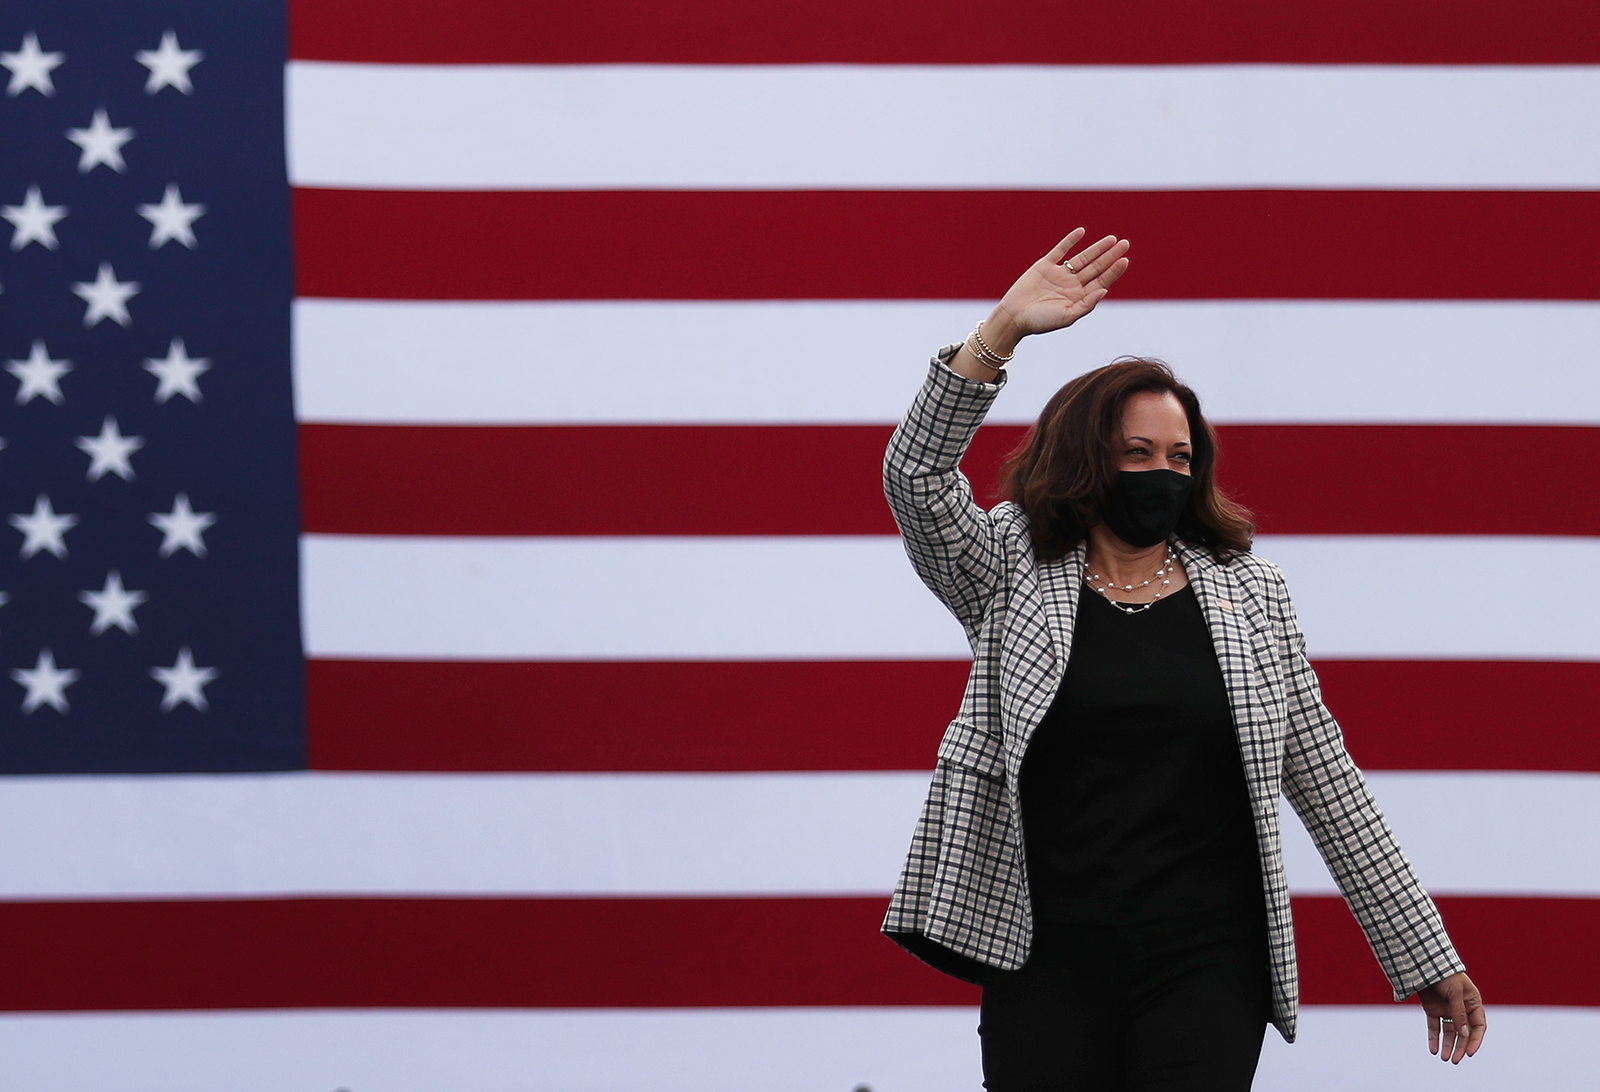 Democratic Vice Presidential Nominee Sen. Kamala Harris makes a campaign stop at the Palm Beach State College on October 31, in Lake Worth, Florida.